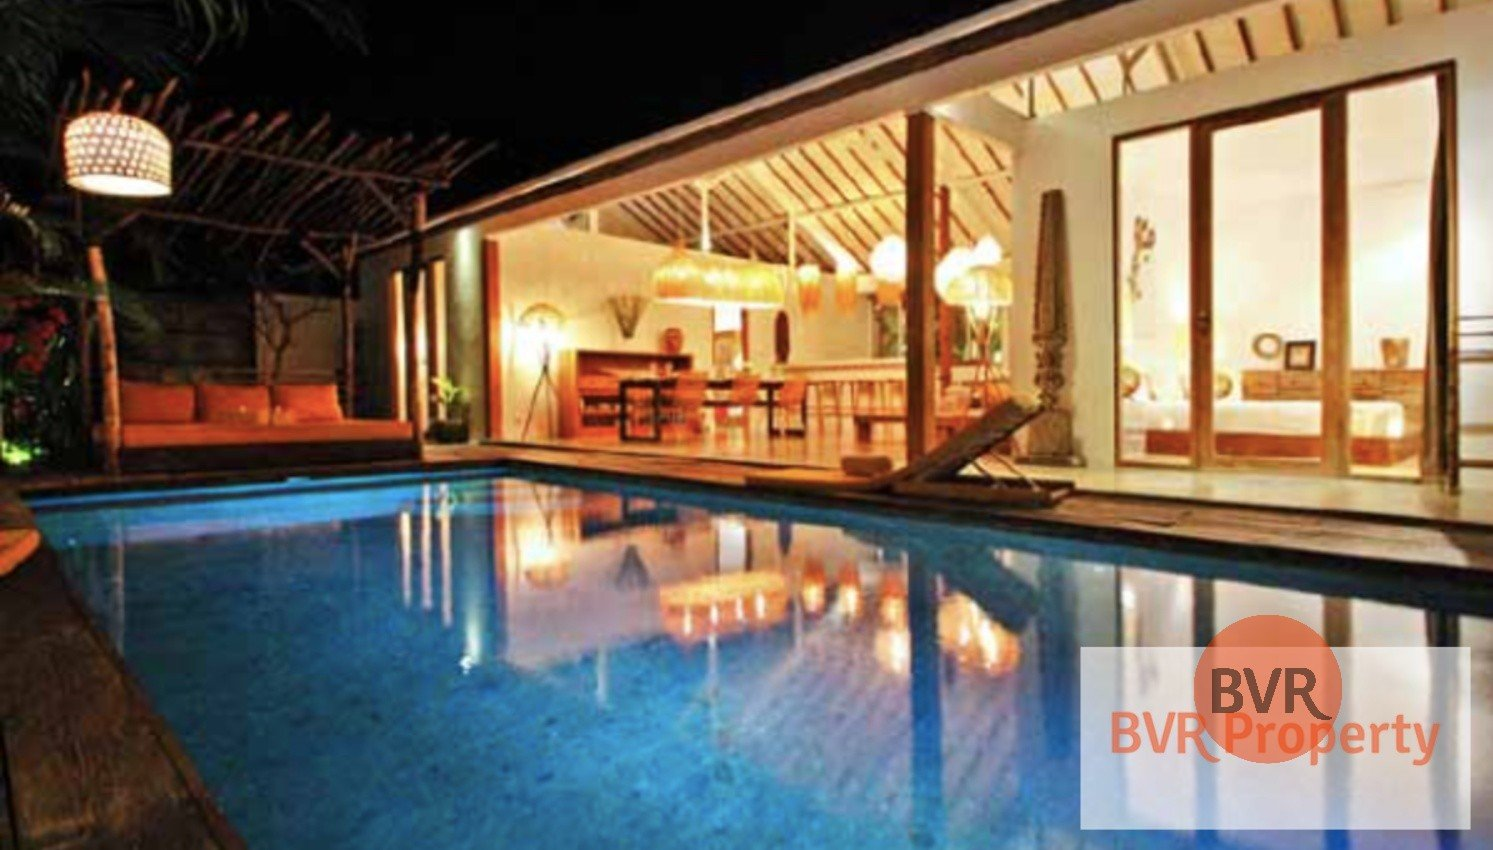 FOR INVESTORS !!! OFF THE PLAN 2 BEDR LUXURY VILLAS IN LEMBONGAN FROM 25 TO 50 YEARS LEASE